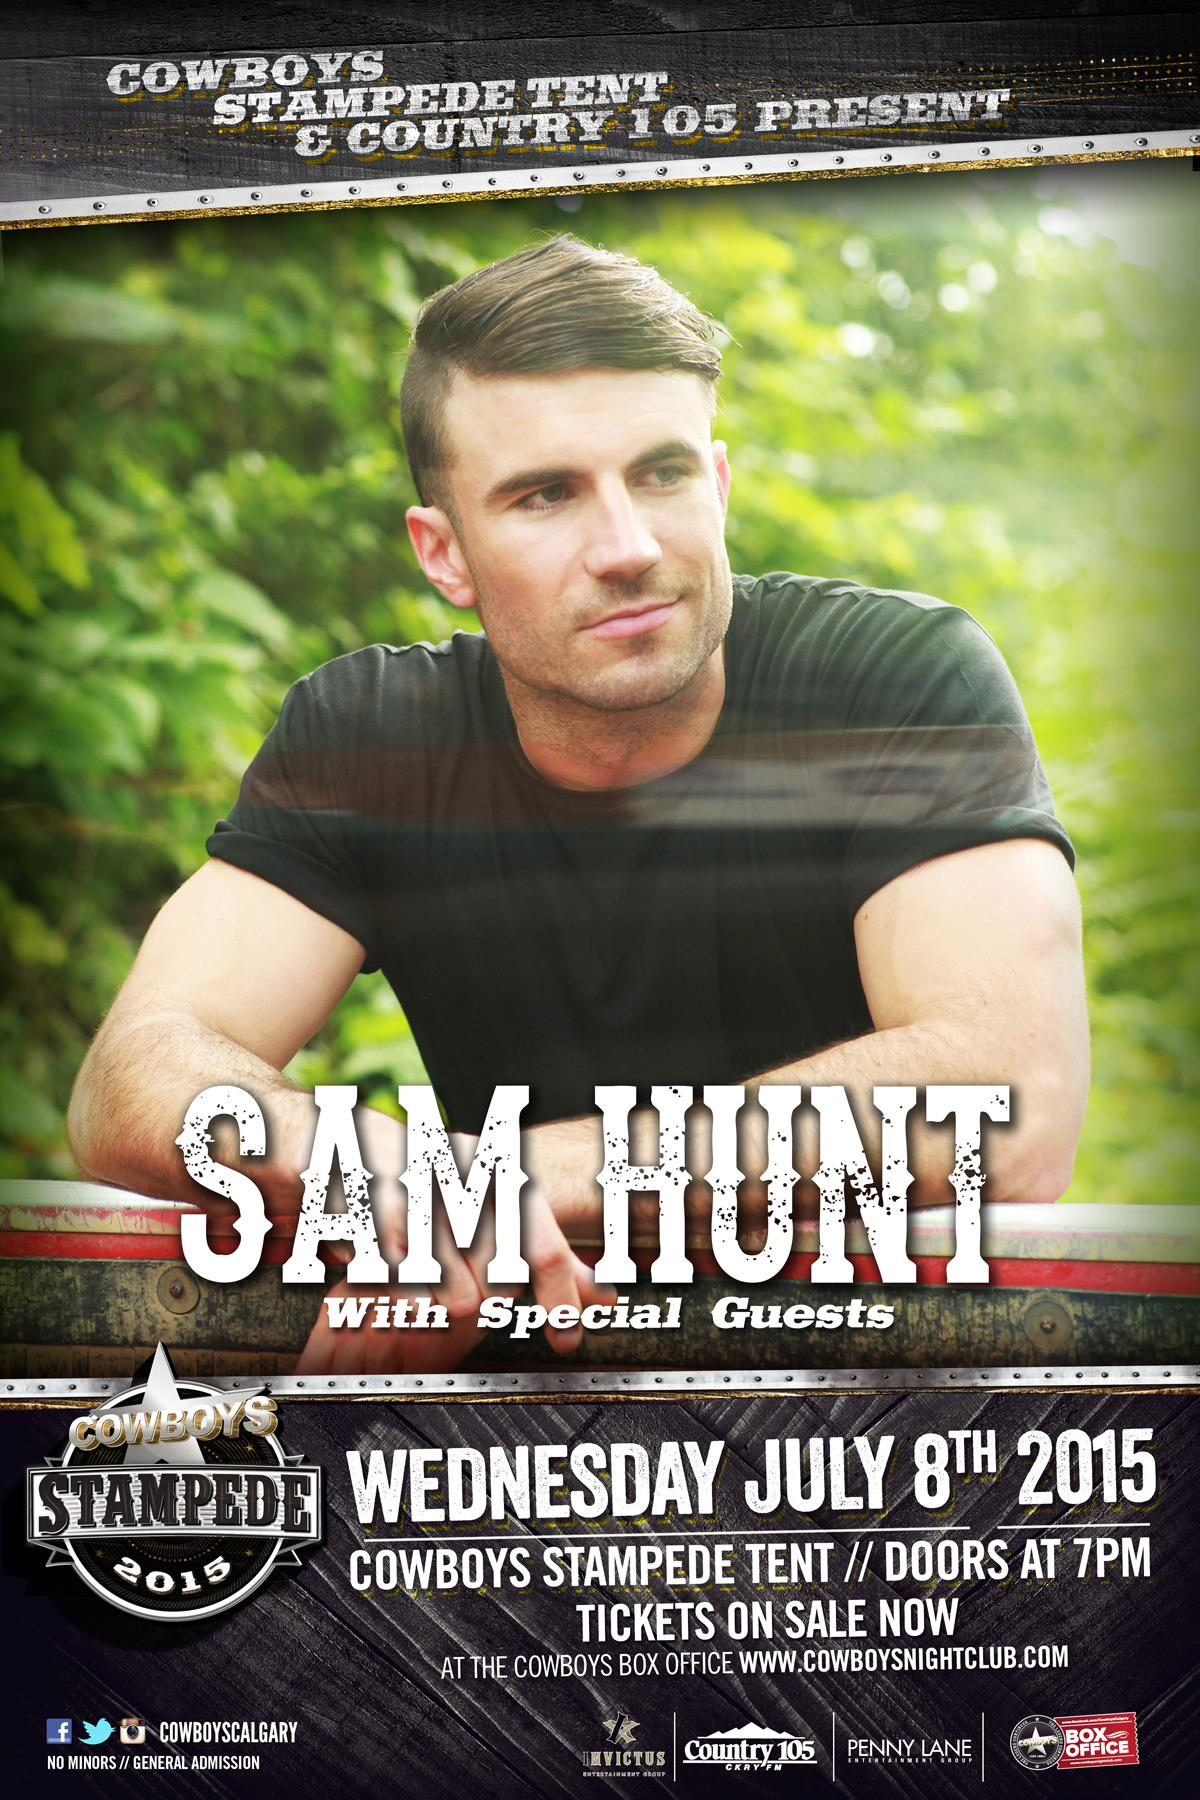 SAM HUNT Cowboys St&ede Tent  sc 1 st  Cowboys Dance Hall Tickets - Ticketleap & SAM HUNT: Cowboys Stampede Tent Tickets in Calgary AB Canada